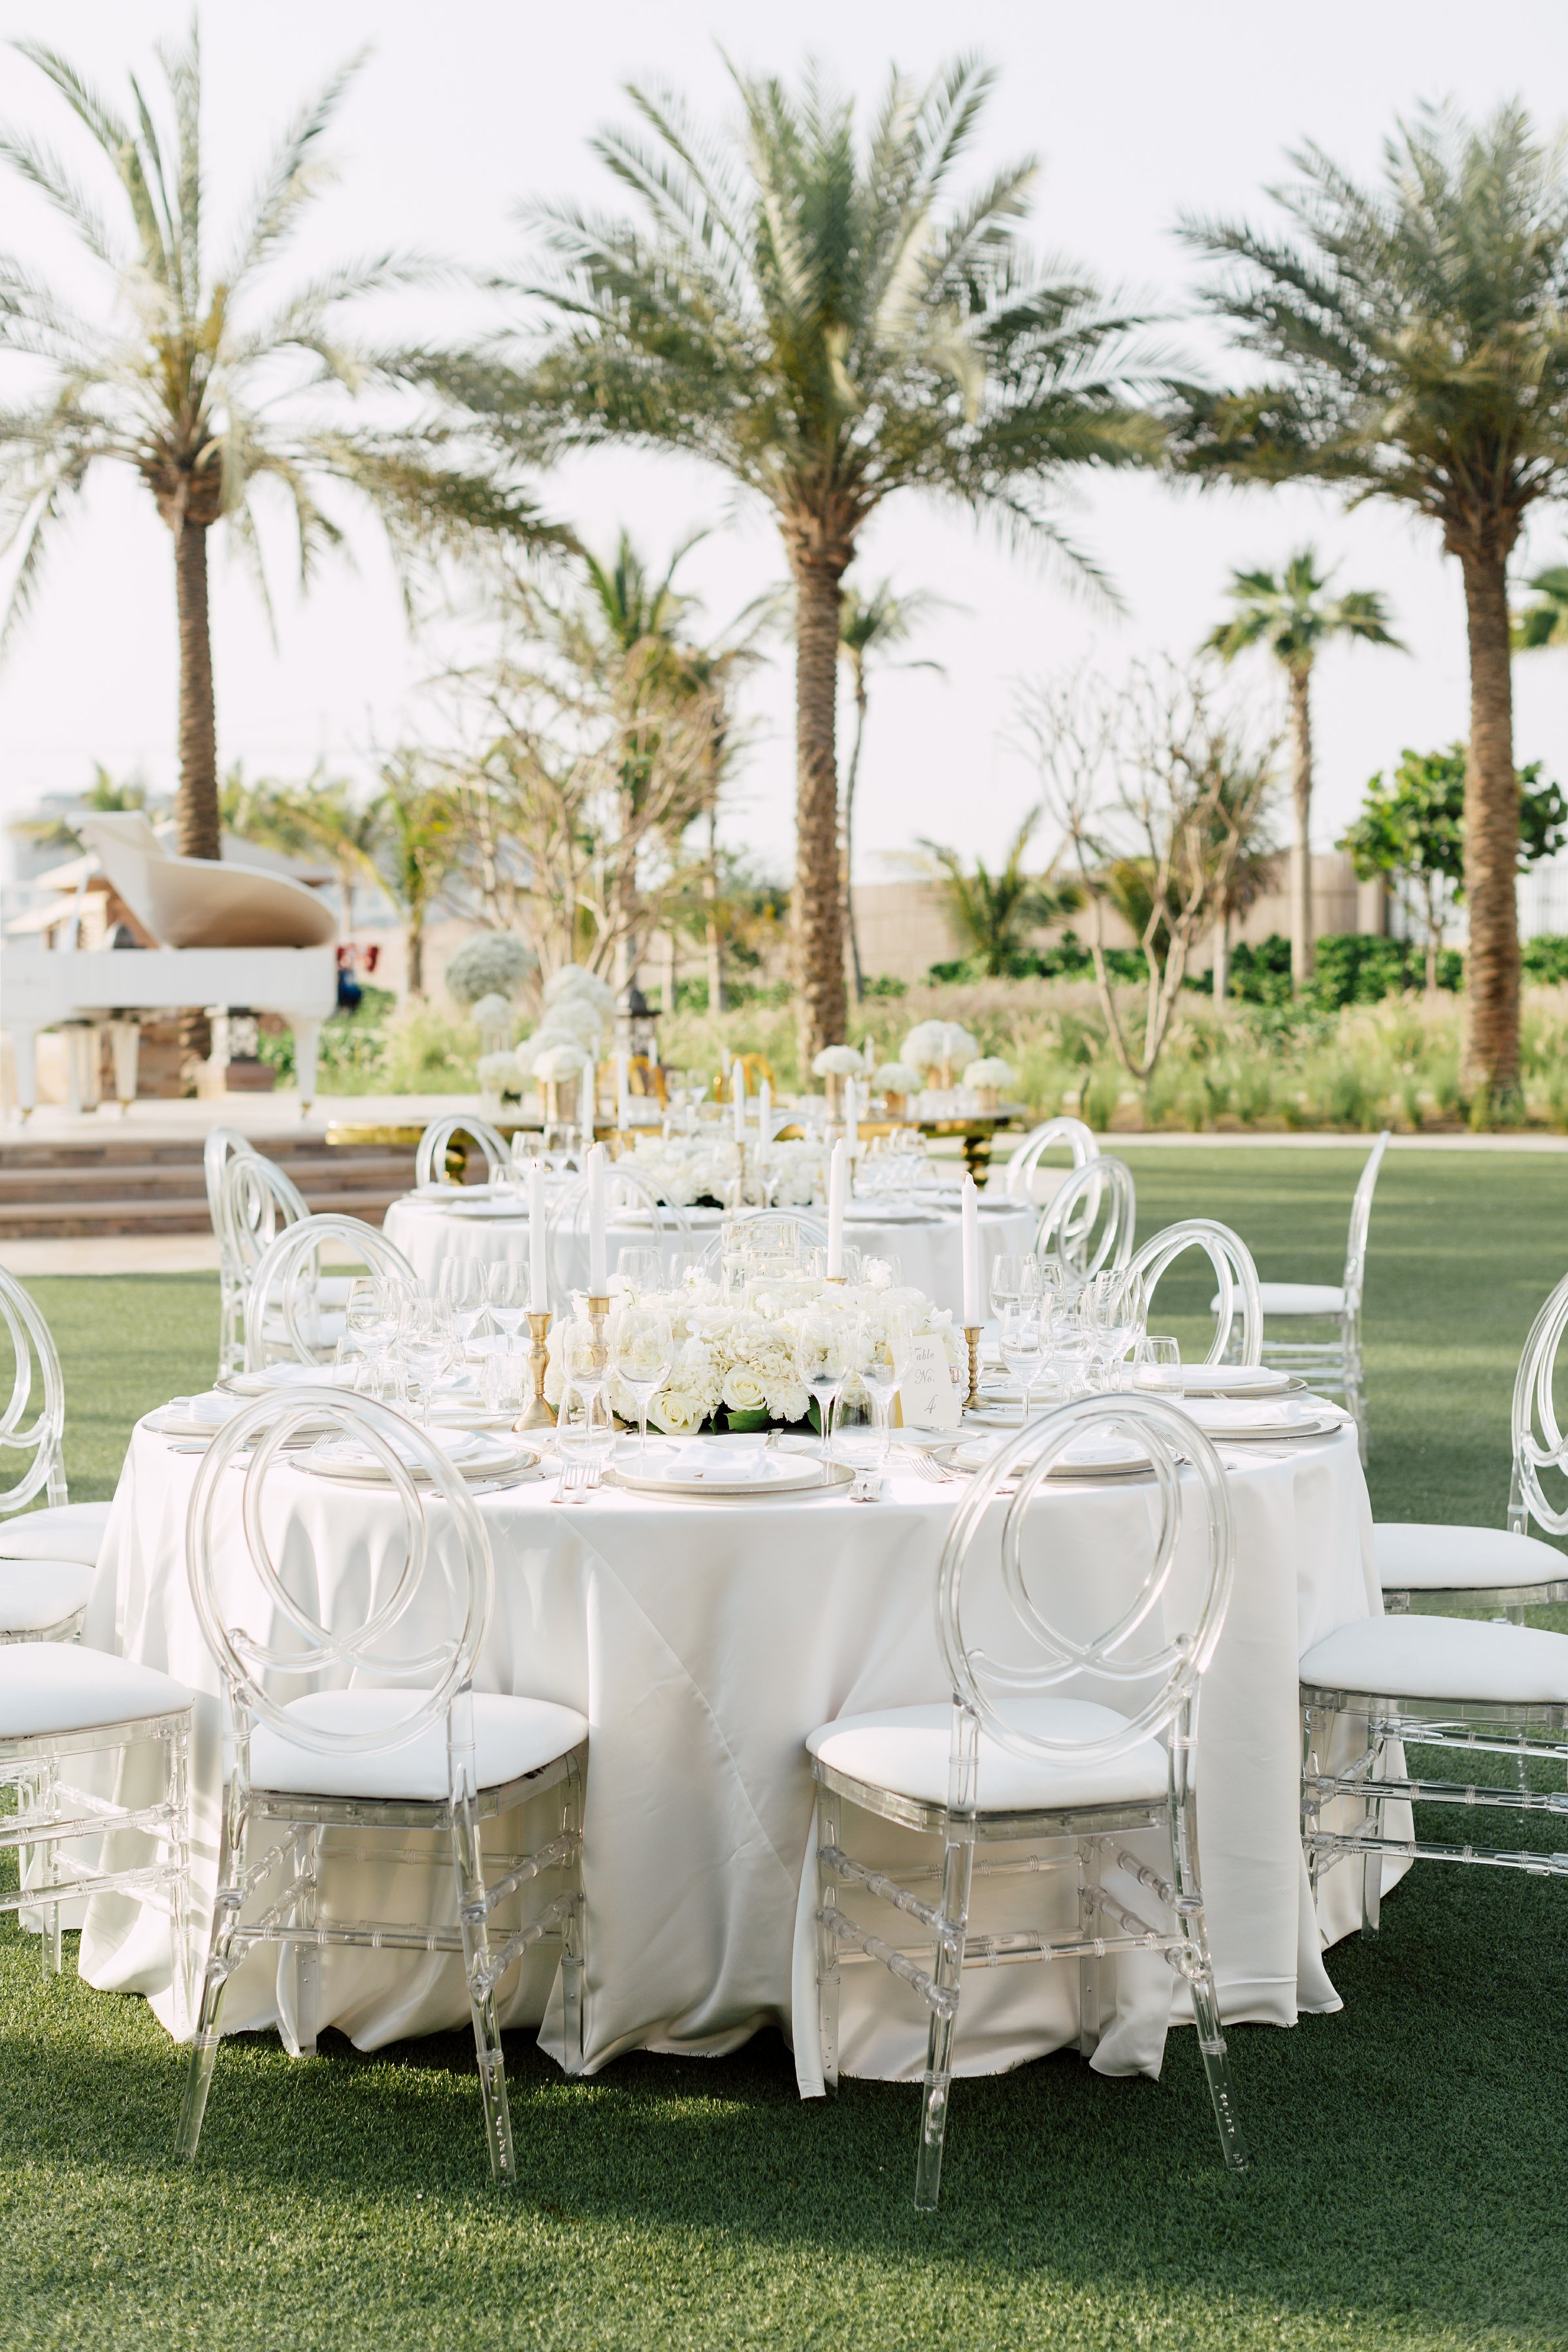 Nigerian Weddings in Dubai, an Interview with Save The Date - Arabia ...